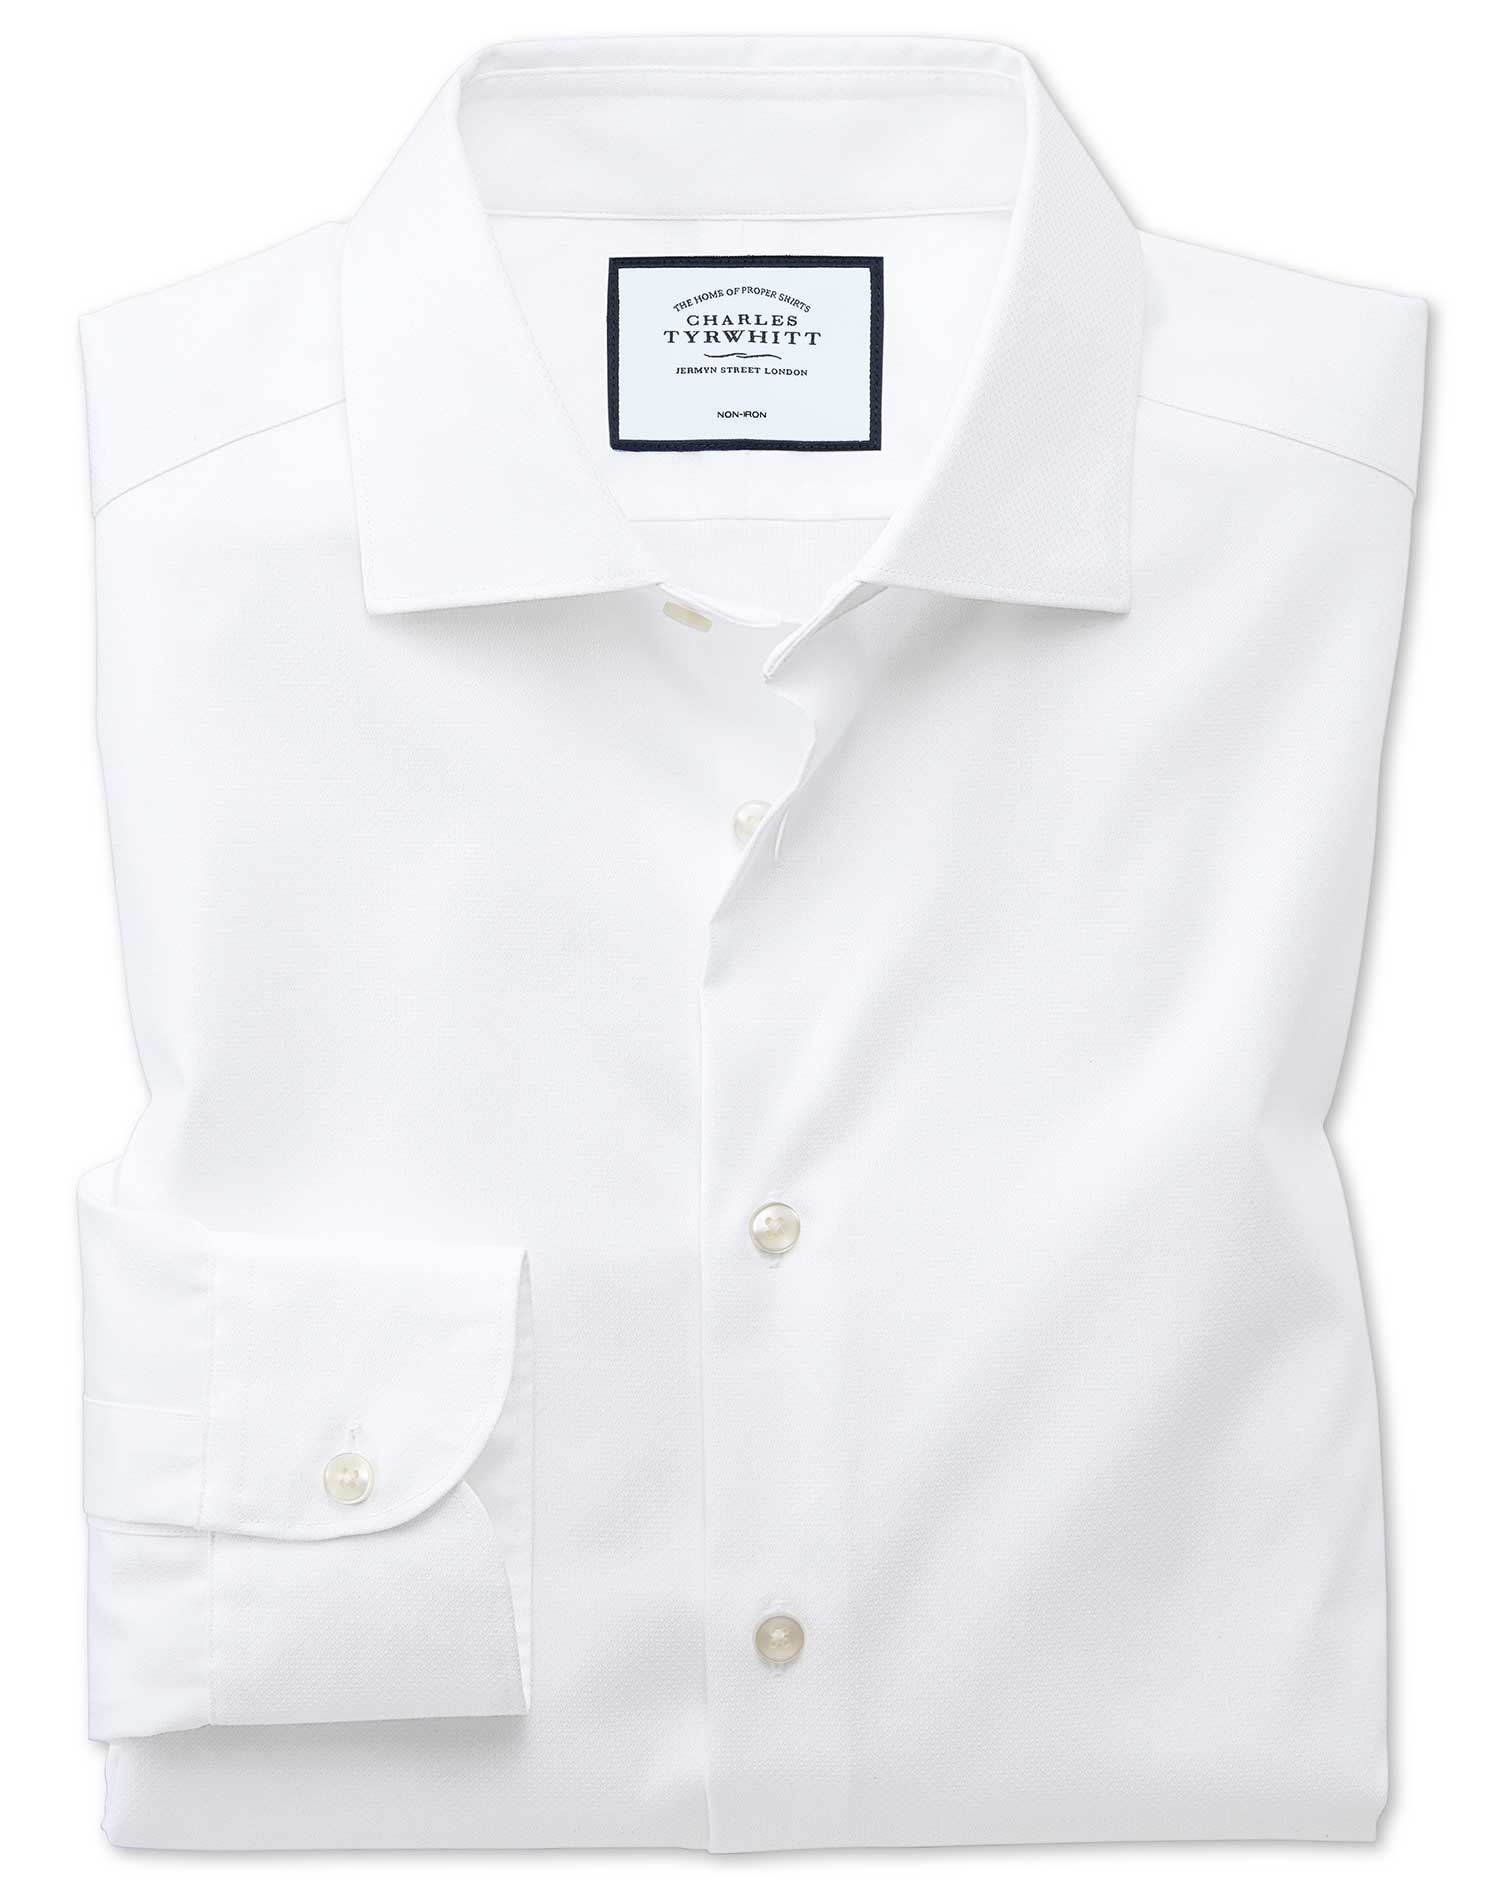 Classic Fit Semi-Cutaway Business Casual Non-Iron Modern Textures White Cotton Formal Shirt Single C